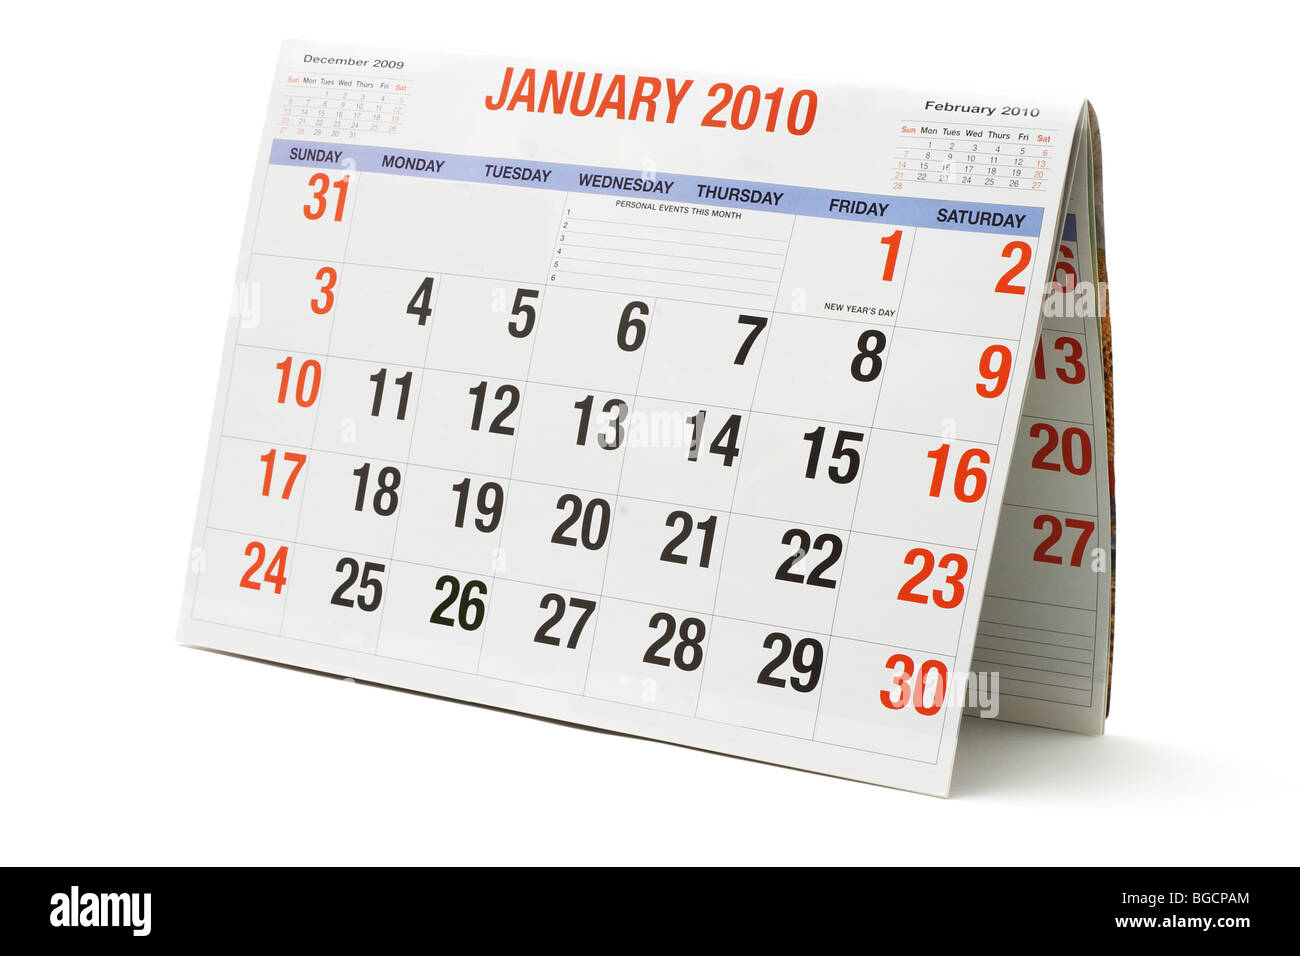 2010 calendar showing January page on white background - Stock Image